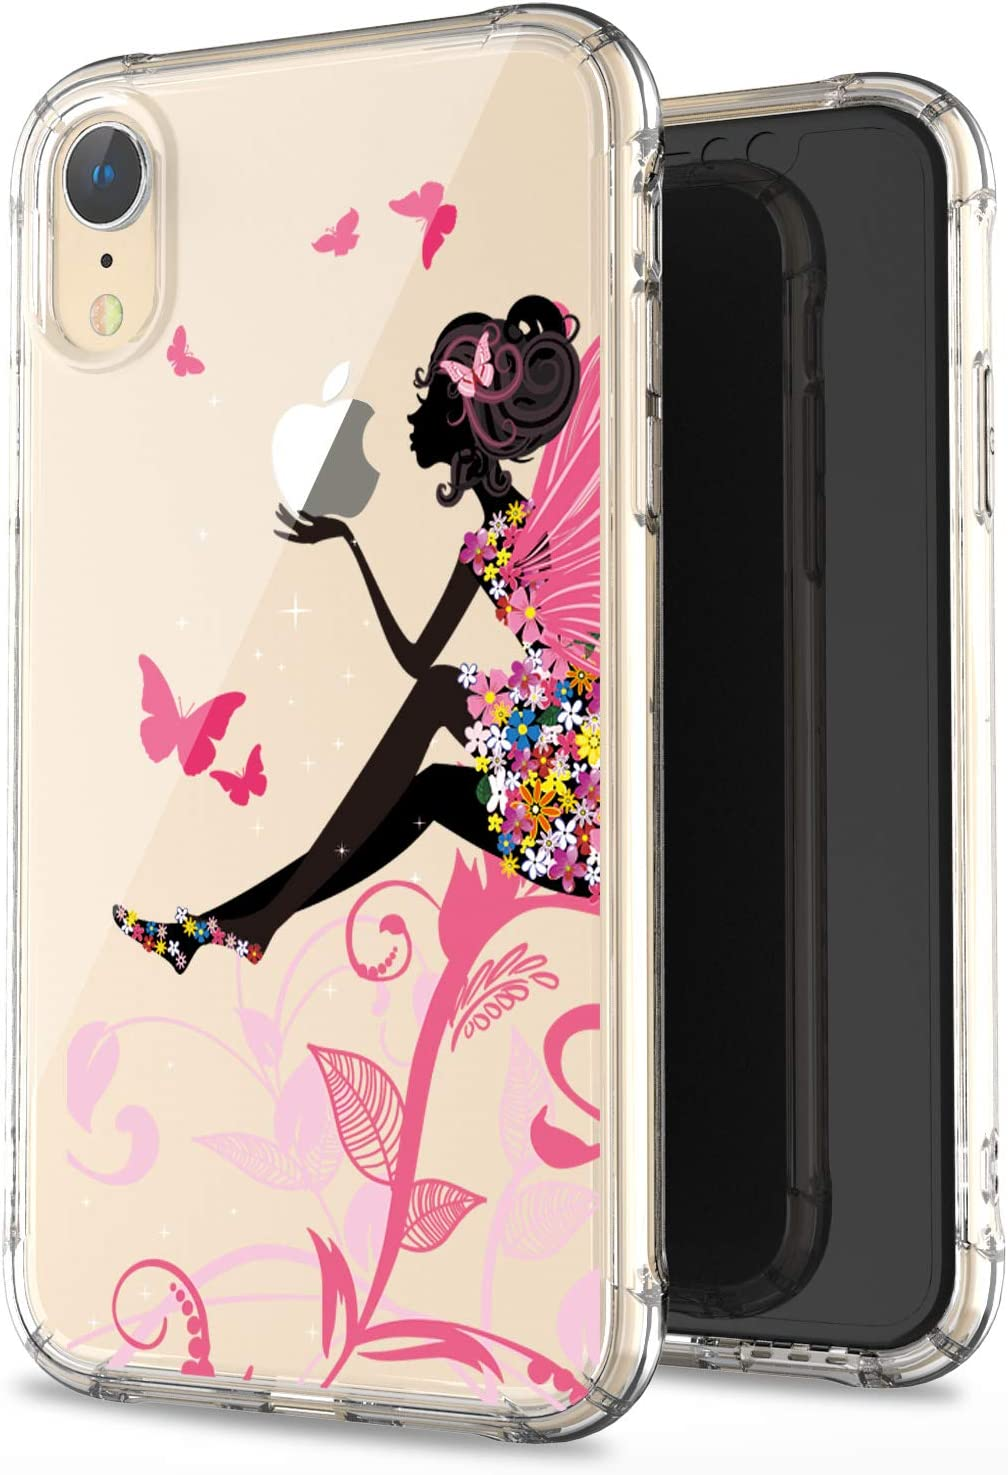 JAHOLAN Compatible iPhone XR Case Clear Cute Amusing Whimsical Design Flower Fairy Flexible Bumper TPU Soft Rubber Silicone Cover Phone Case for iPhone XR 2018 6.1 inch